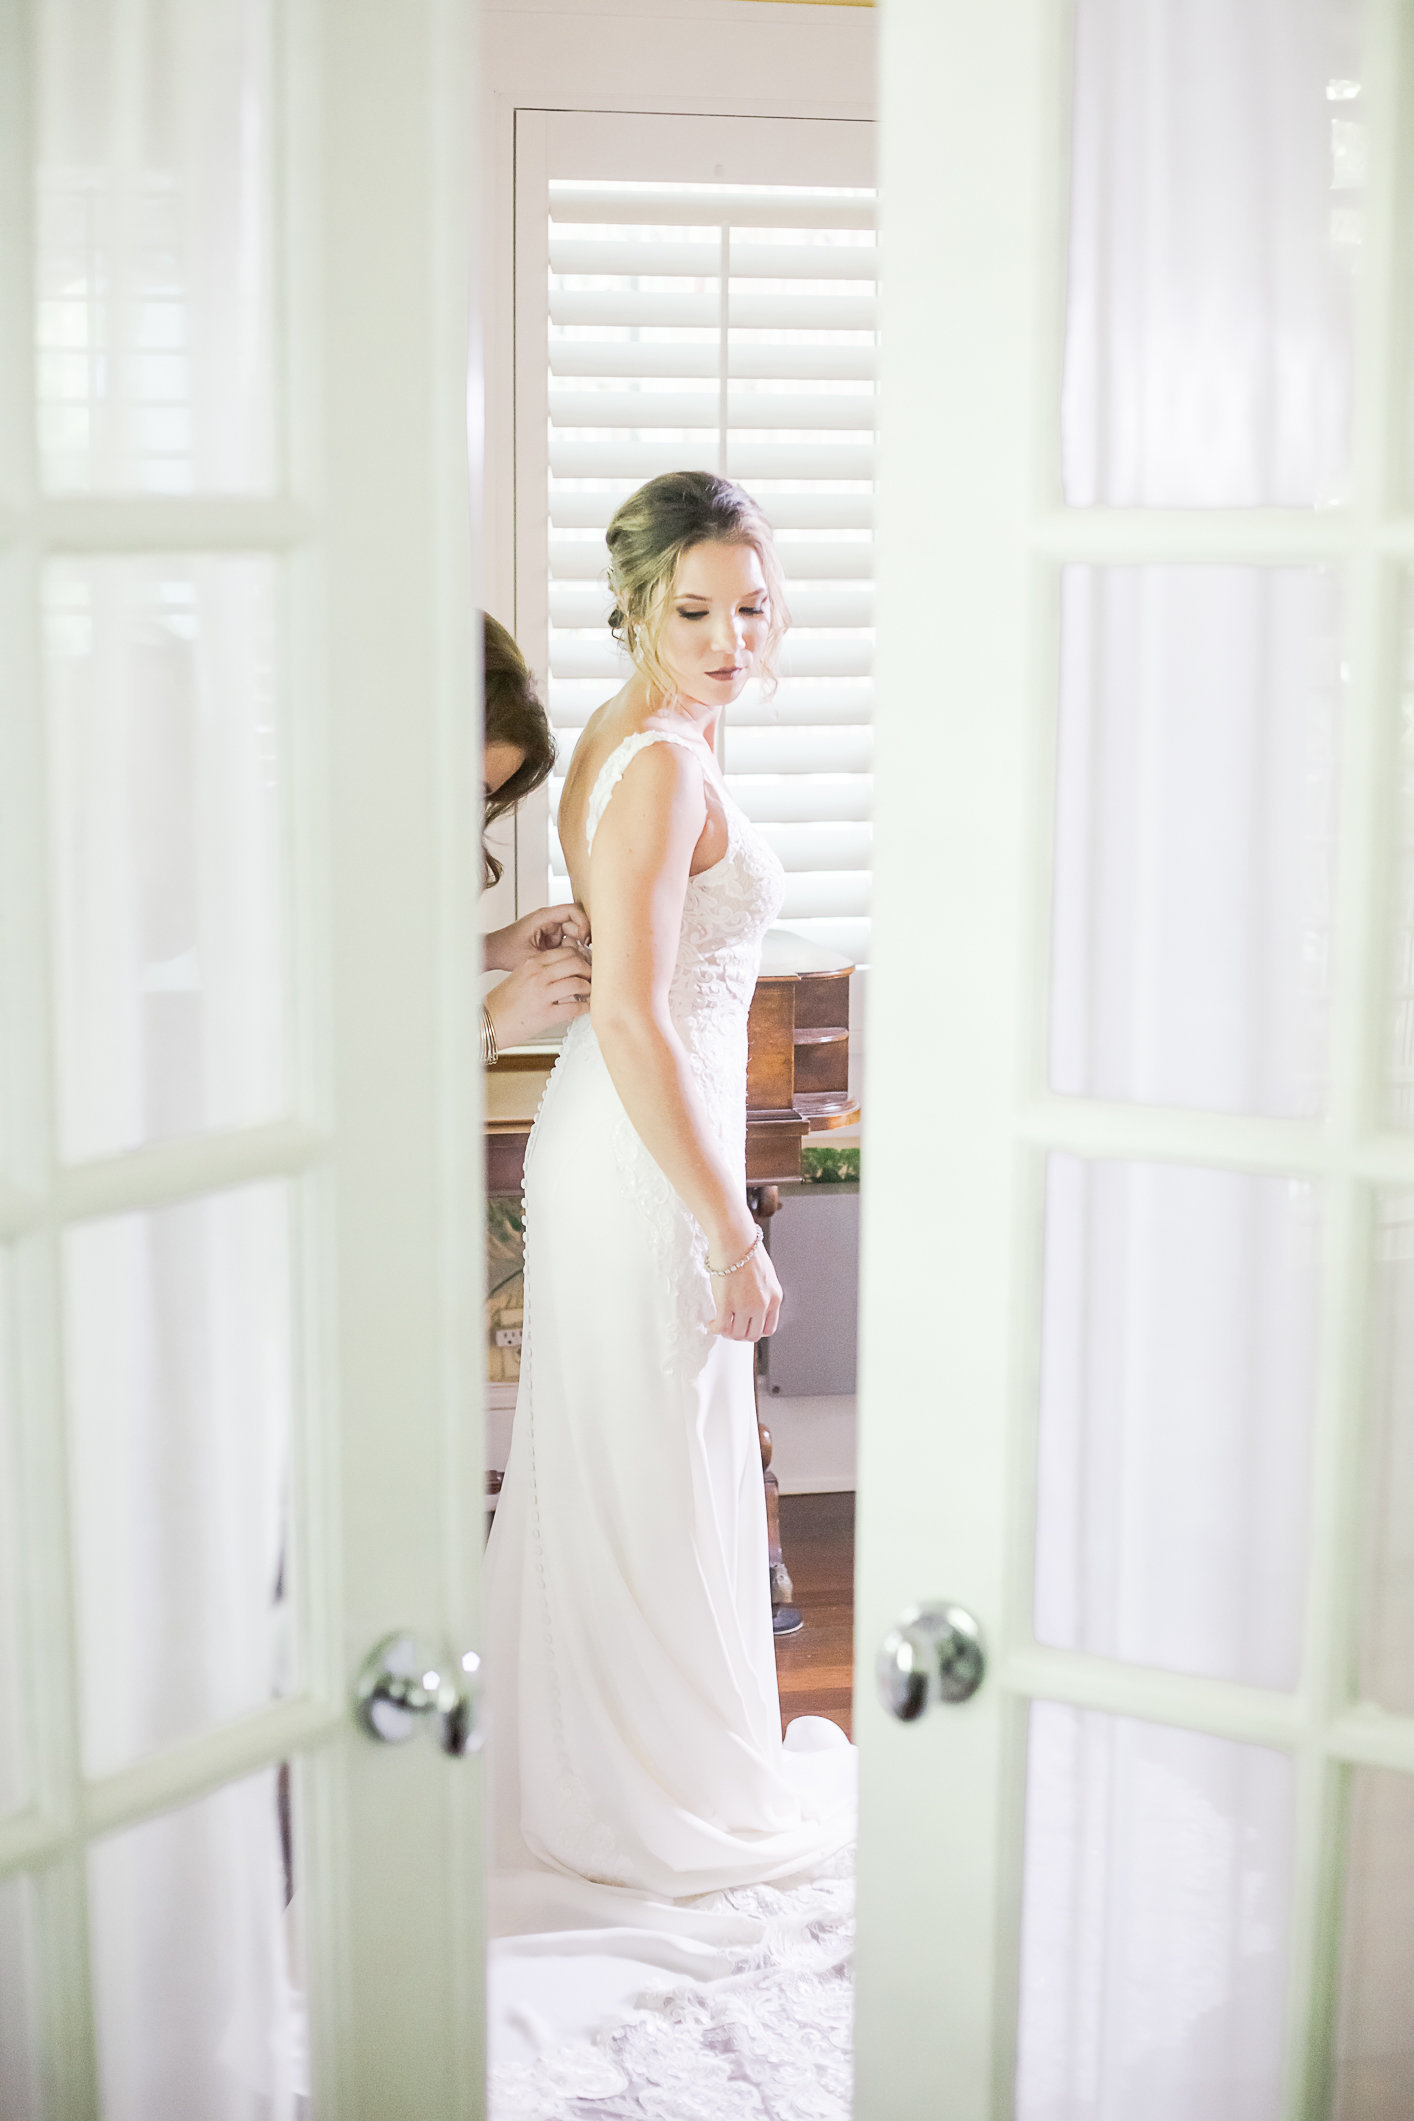 Bride getting ready  - Sundy House by Palm Beach Photography, Inc.